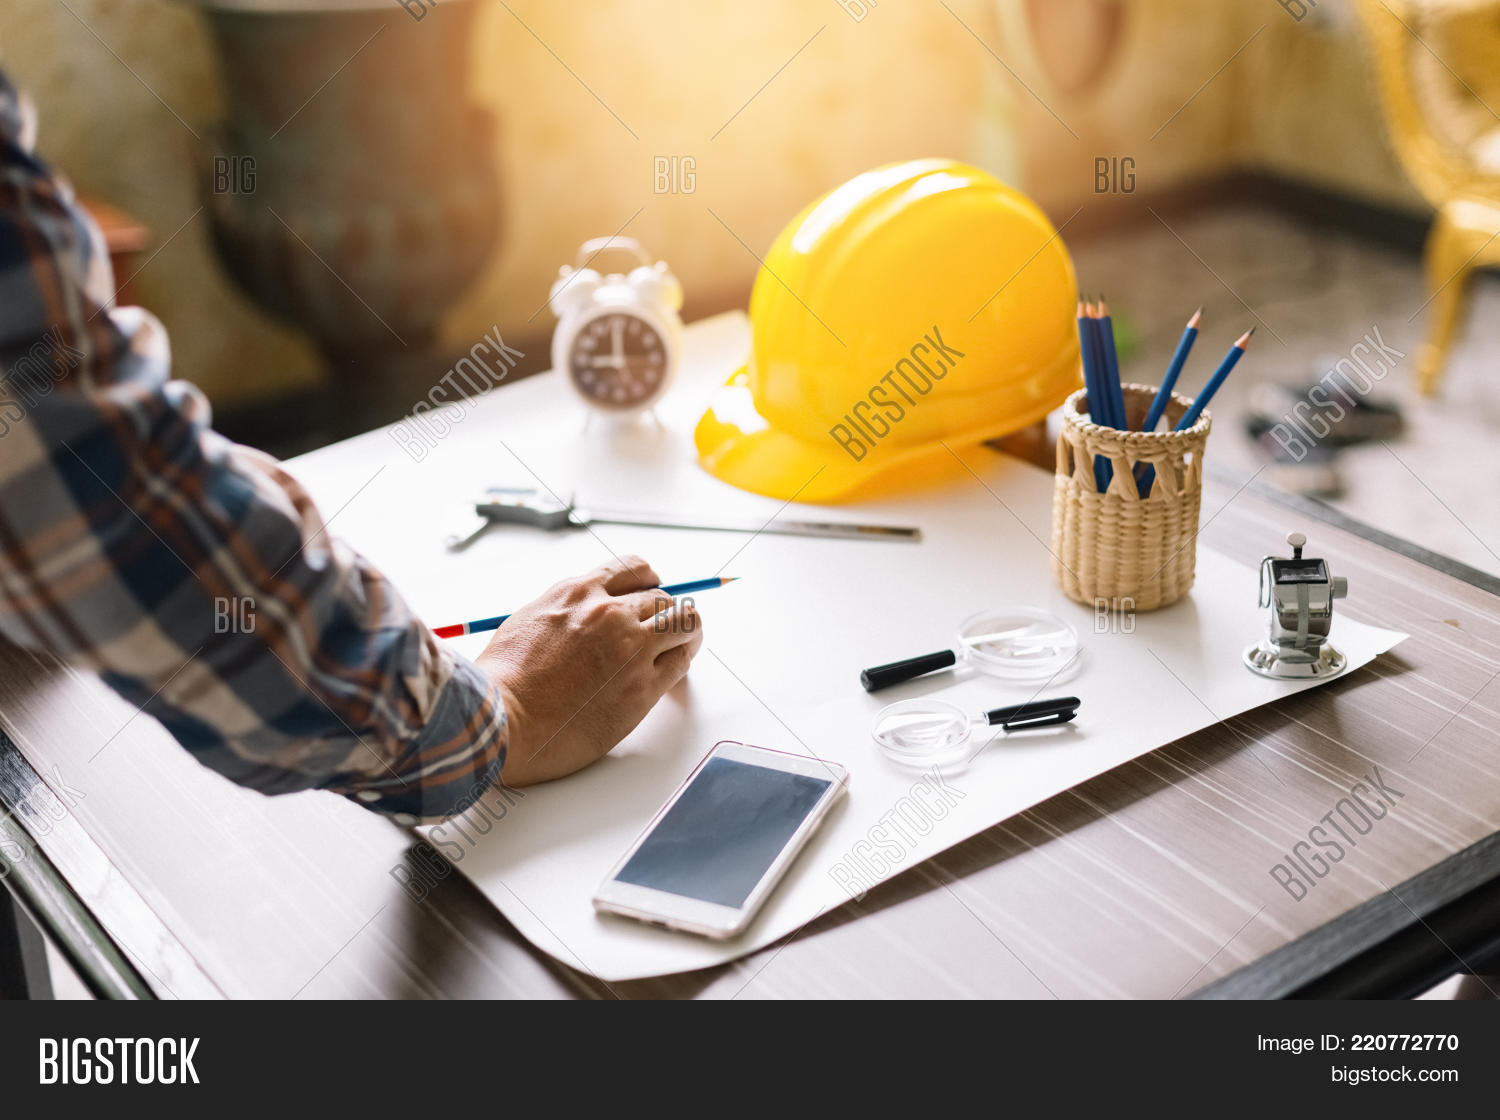 Architect Or Construction Engineer Sketching A Construction Project On Drawing Table With Engineerin